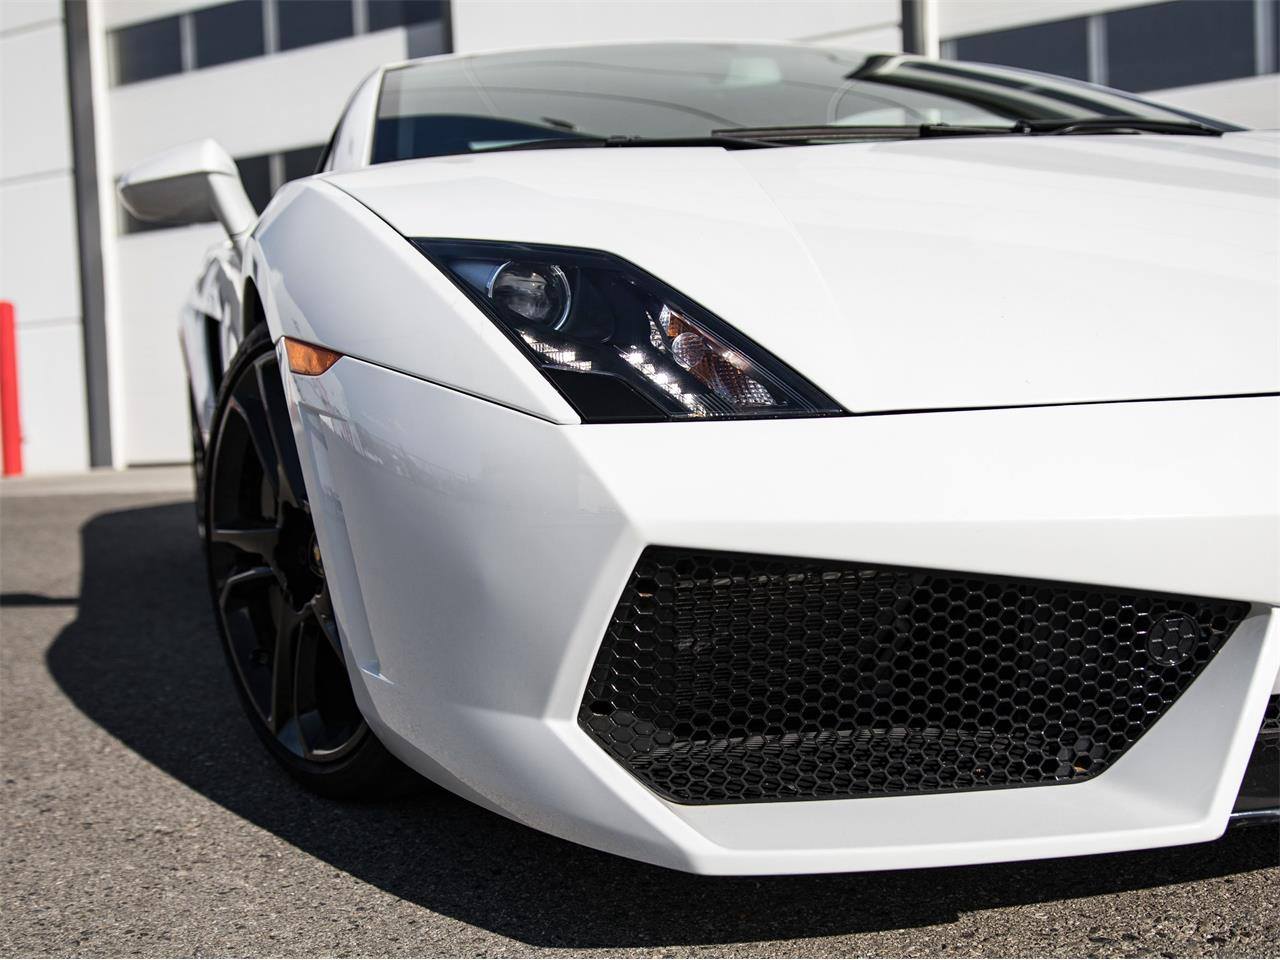 2012 Lamborghini Gallardo (CC-1335626) for sale in Kelowna, British Columbia